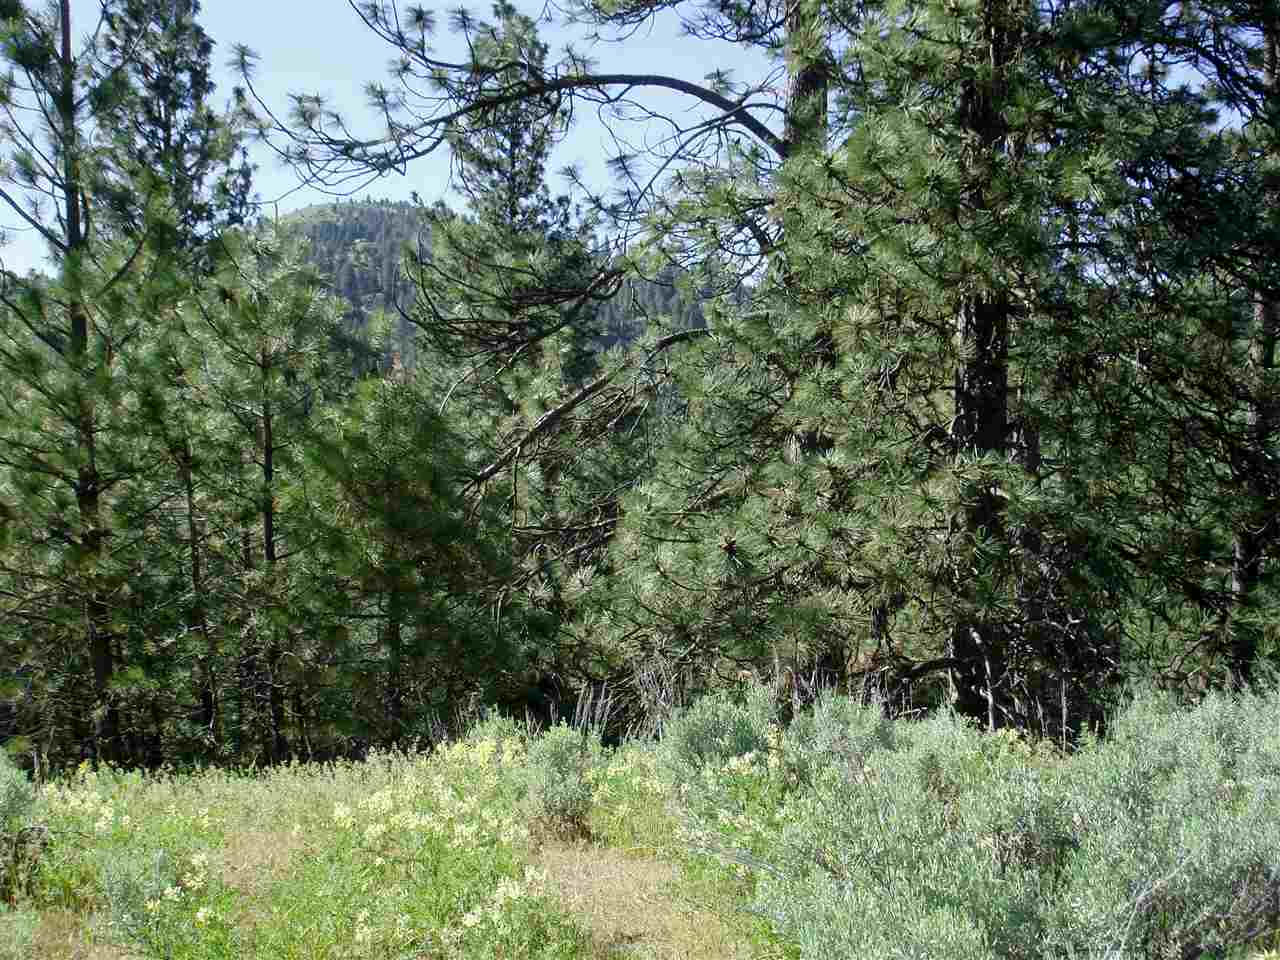 Recreational Property for Sale at Kelly Gulch Road Kelly Gulch Road Idaho City, Idaho 83631